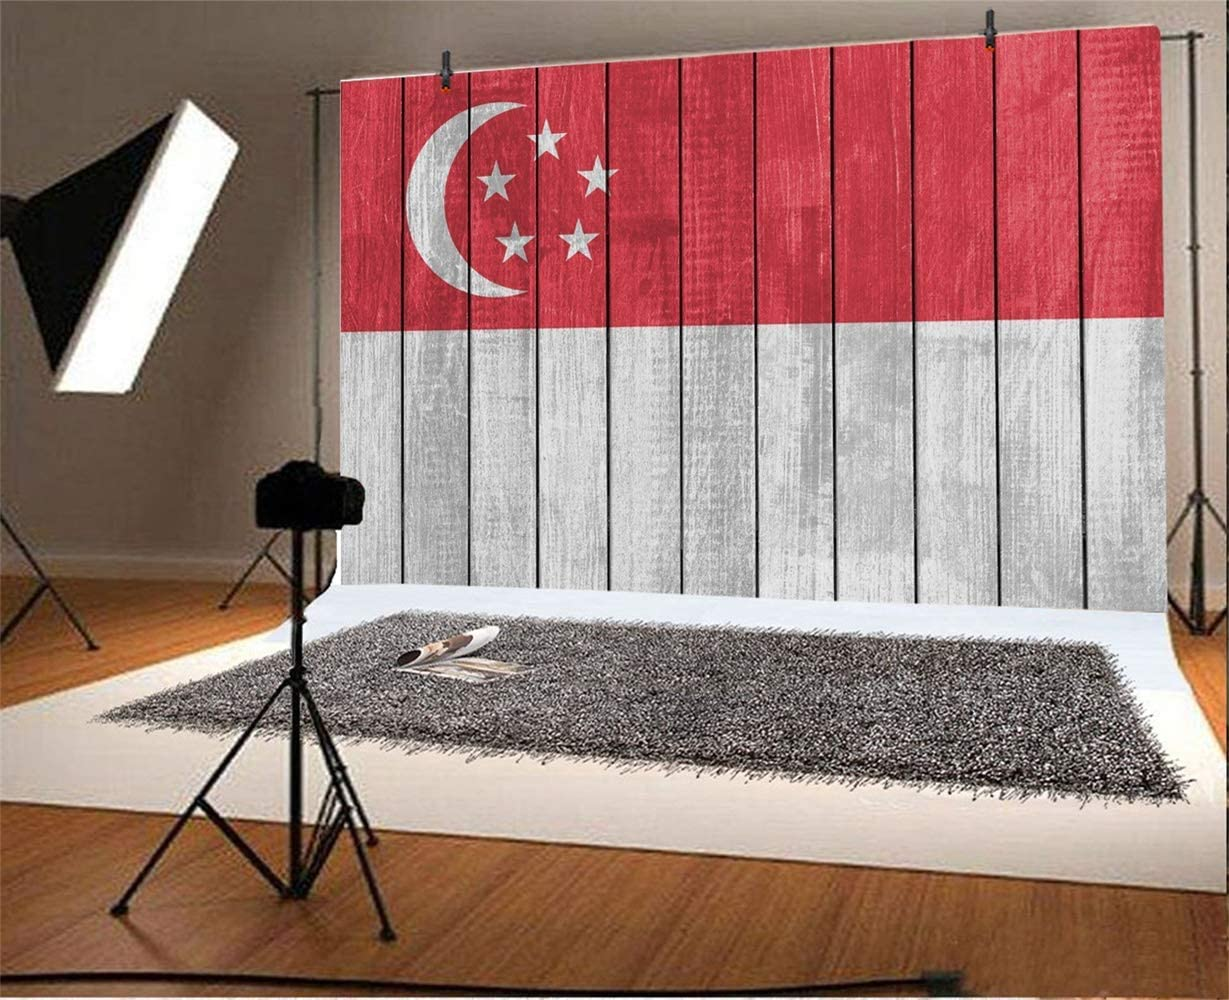 GoEoo Singapore Flag Painted On Wood Plank Background 8x6ft Vinyl Patriotic Wooden Board Photography Backdrops Rustic Wood Texture Wall Backdrop Child Adult Portraits National Festival Banner